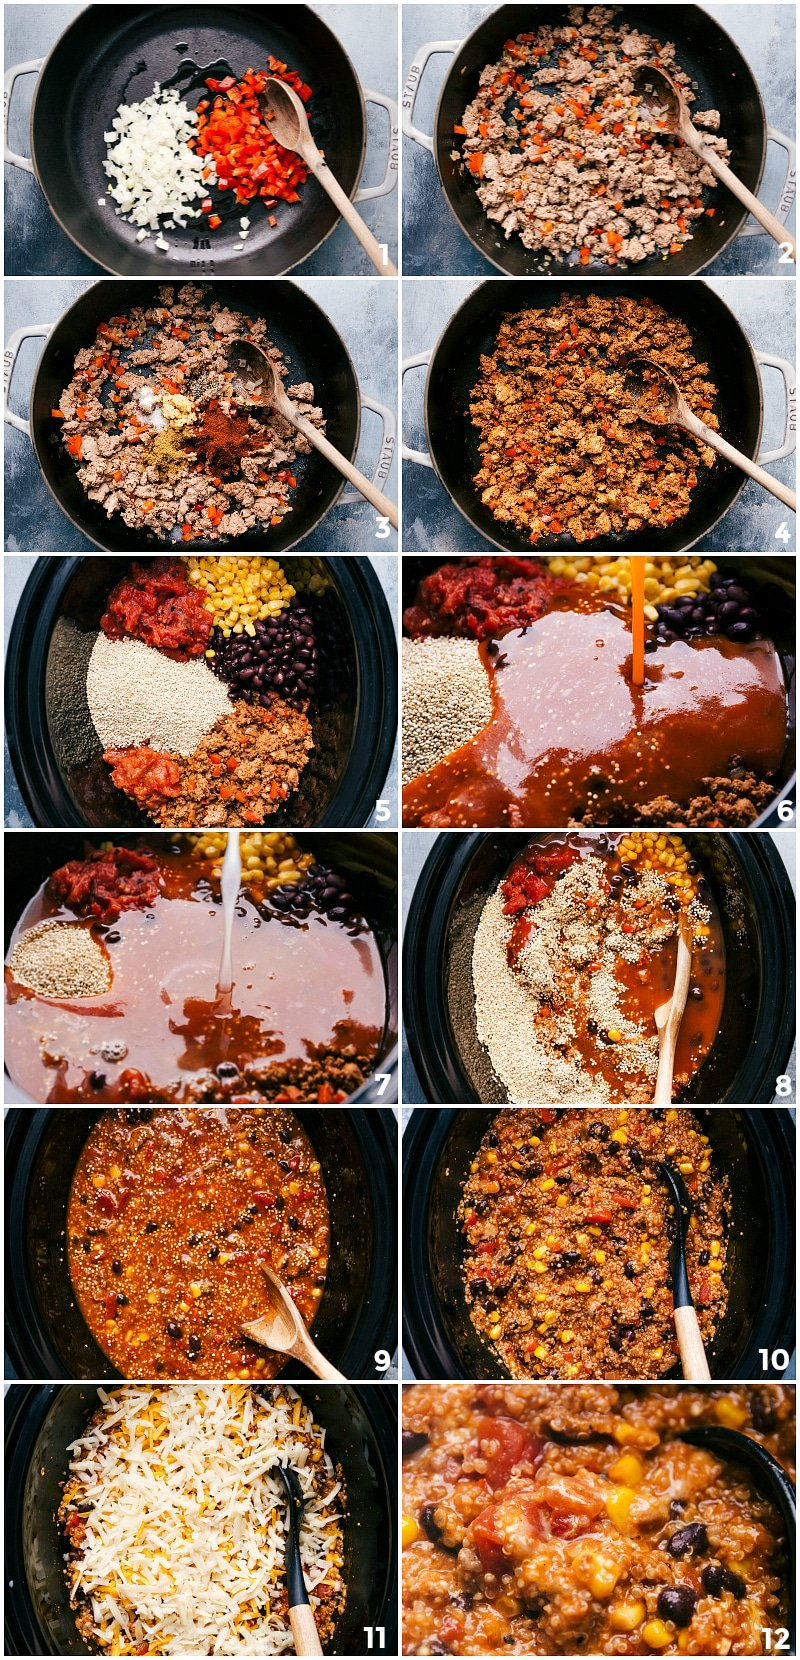 Process shots-- images of the ingredients that go in the slow cooker being prepped, cooked, added, and then mixed together.